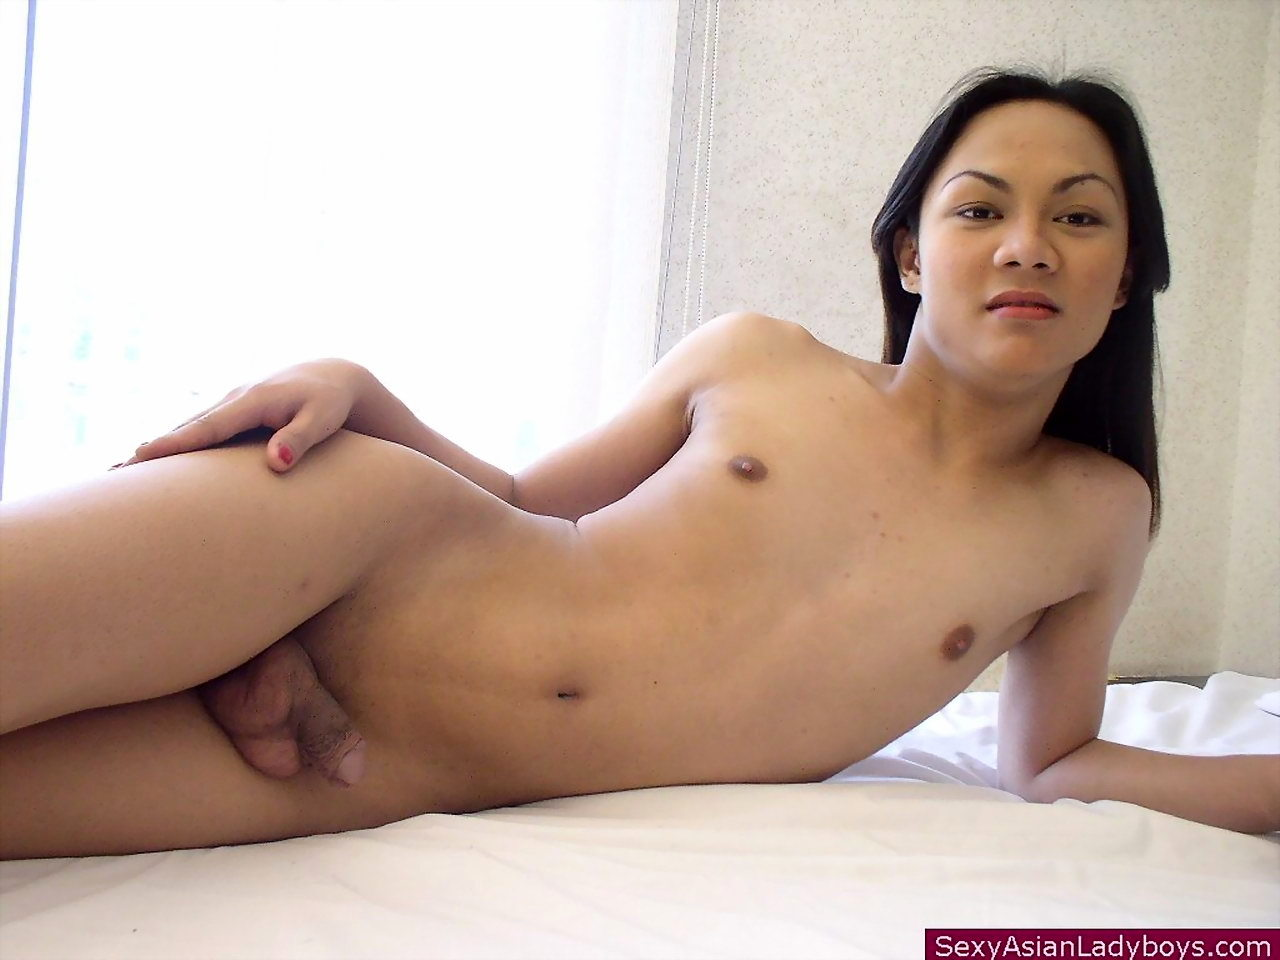 Young And Shy Shemale Undressing To Flash Her Salivating Shaved Penis